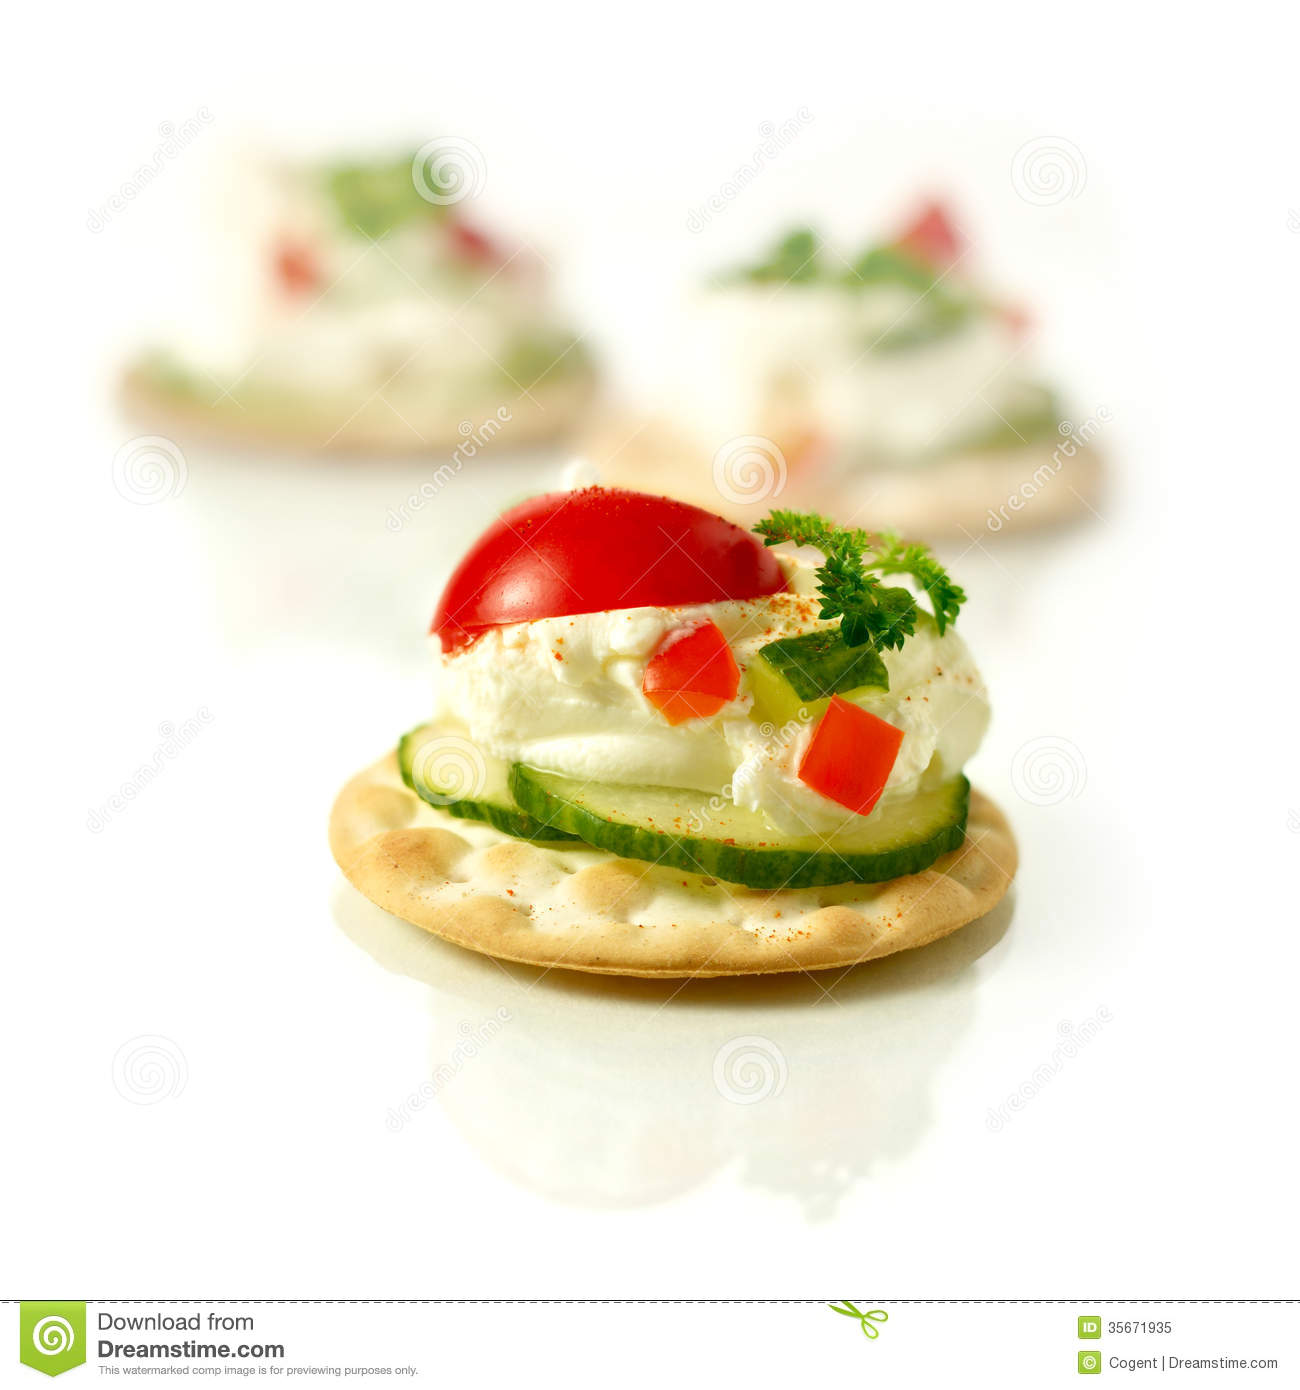 canapes stock image image of cheese gourmet herb food